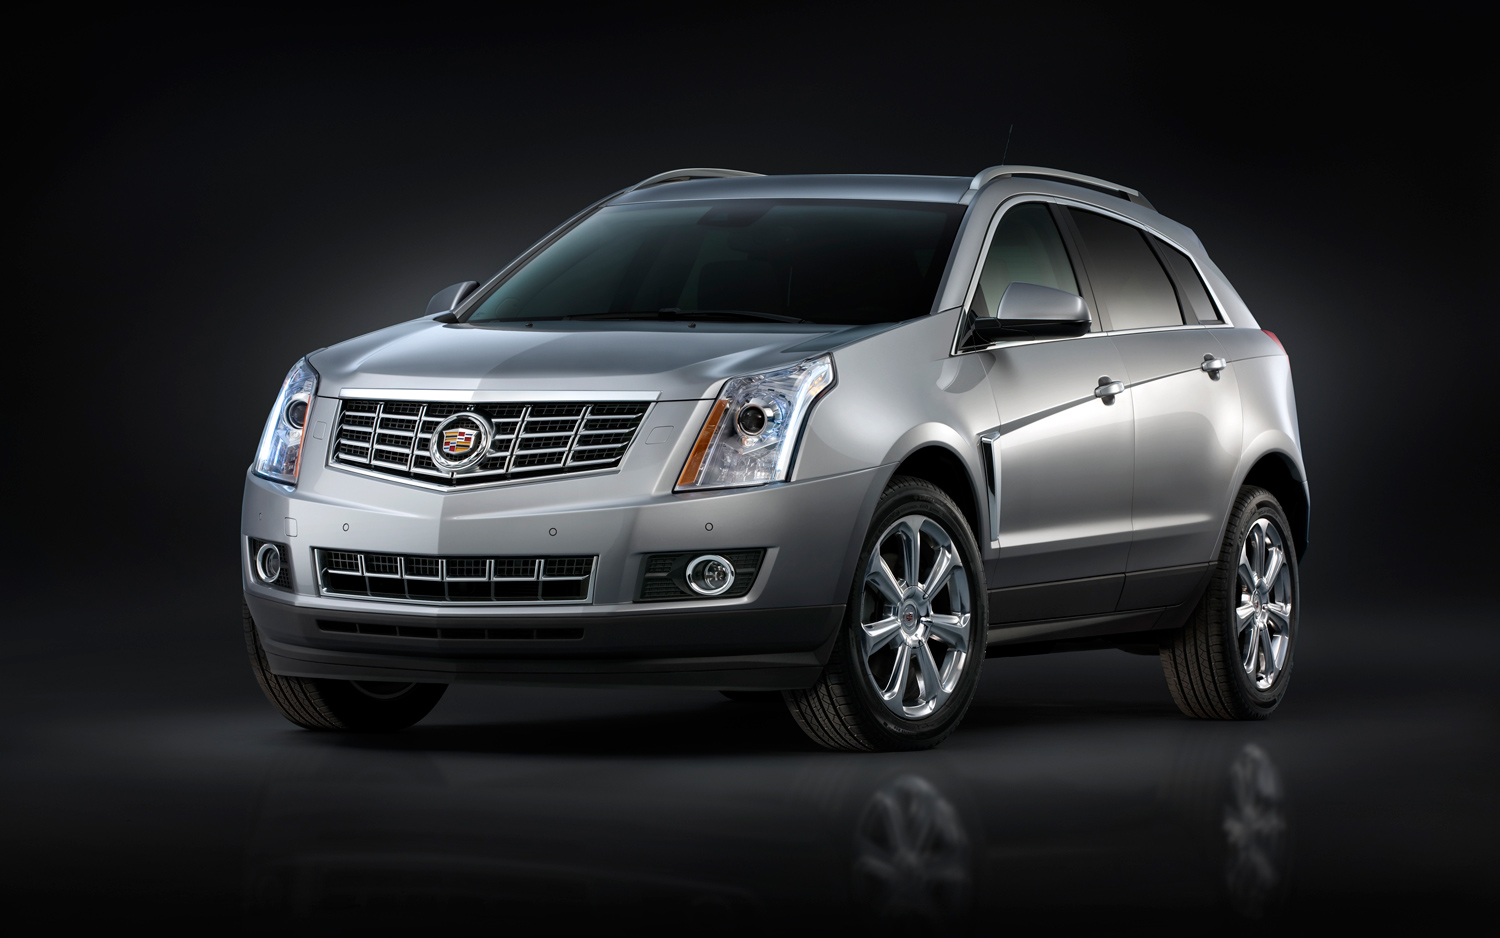 Pictures of cadillac srx ii 2013 #1